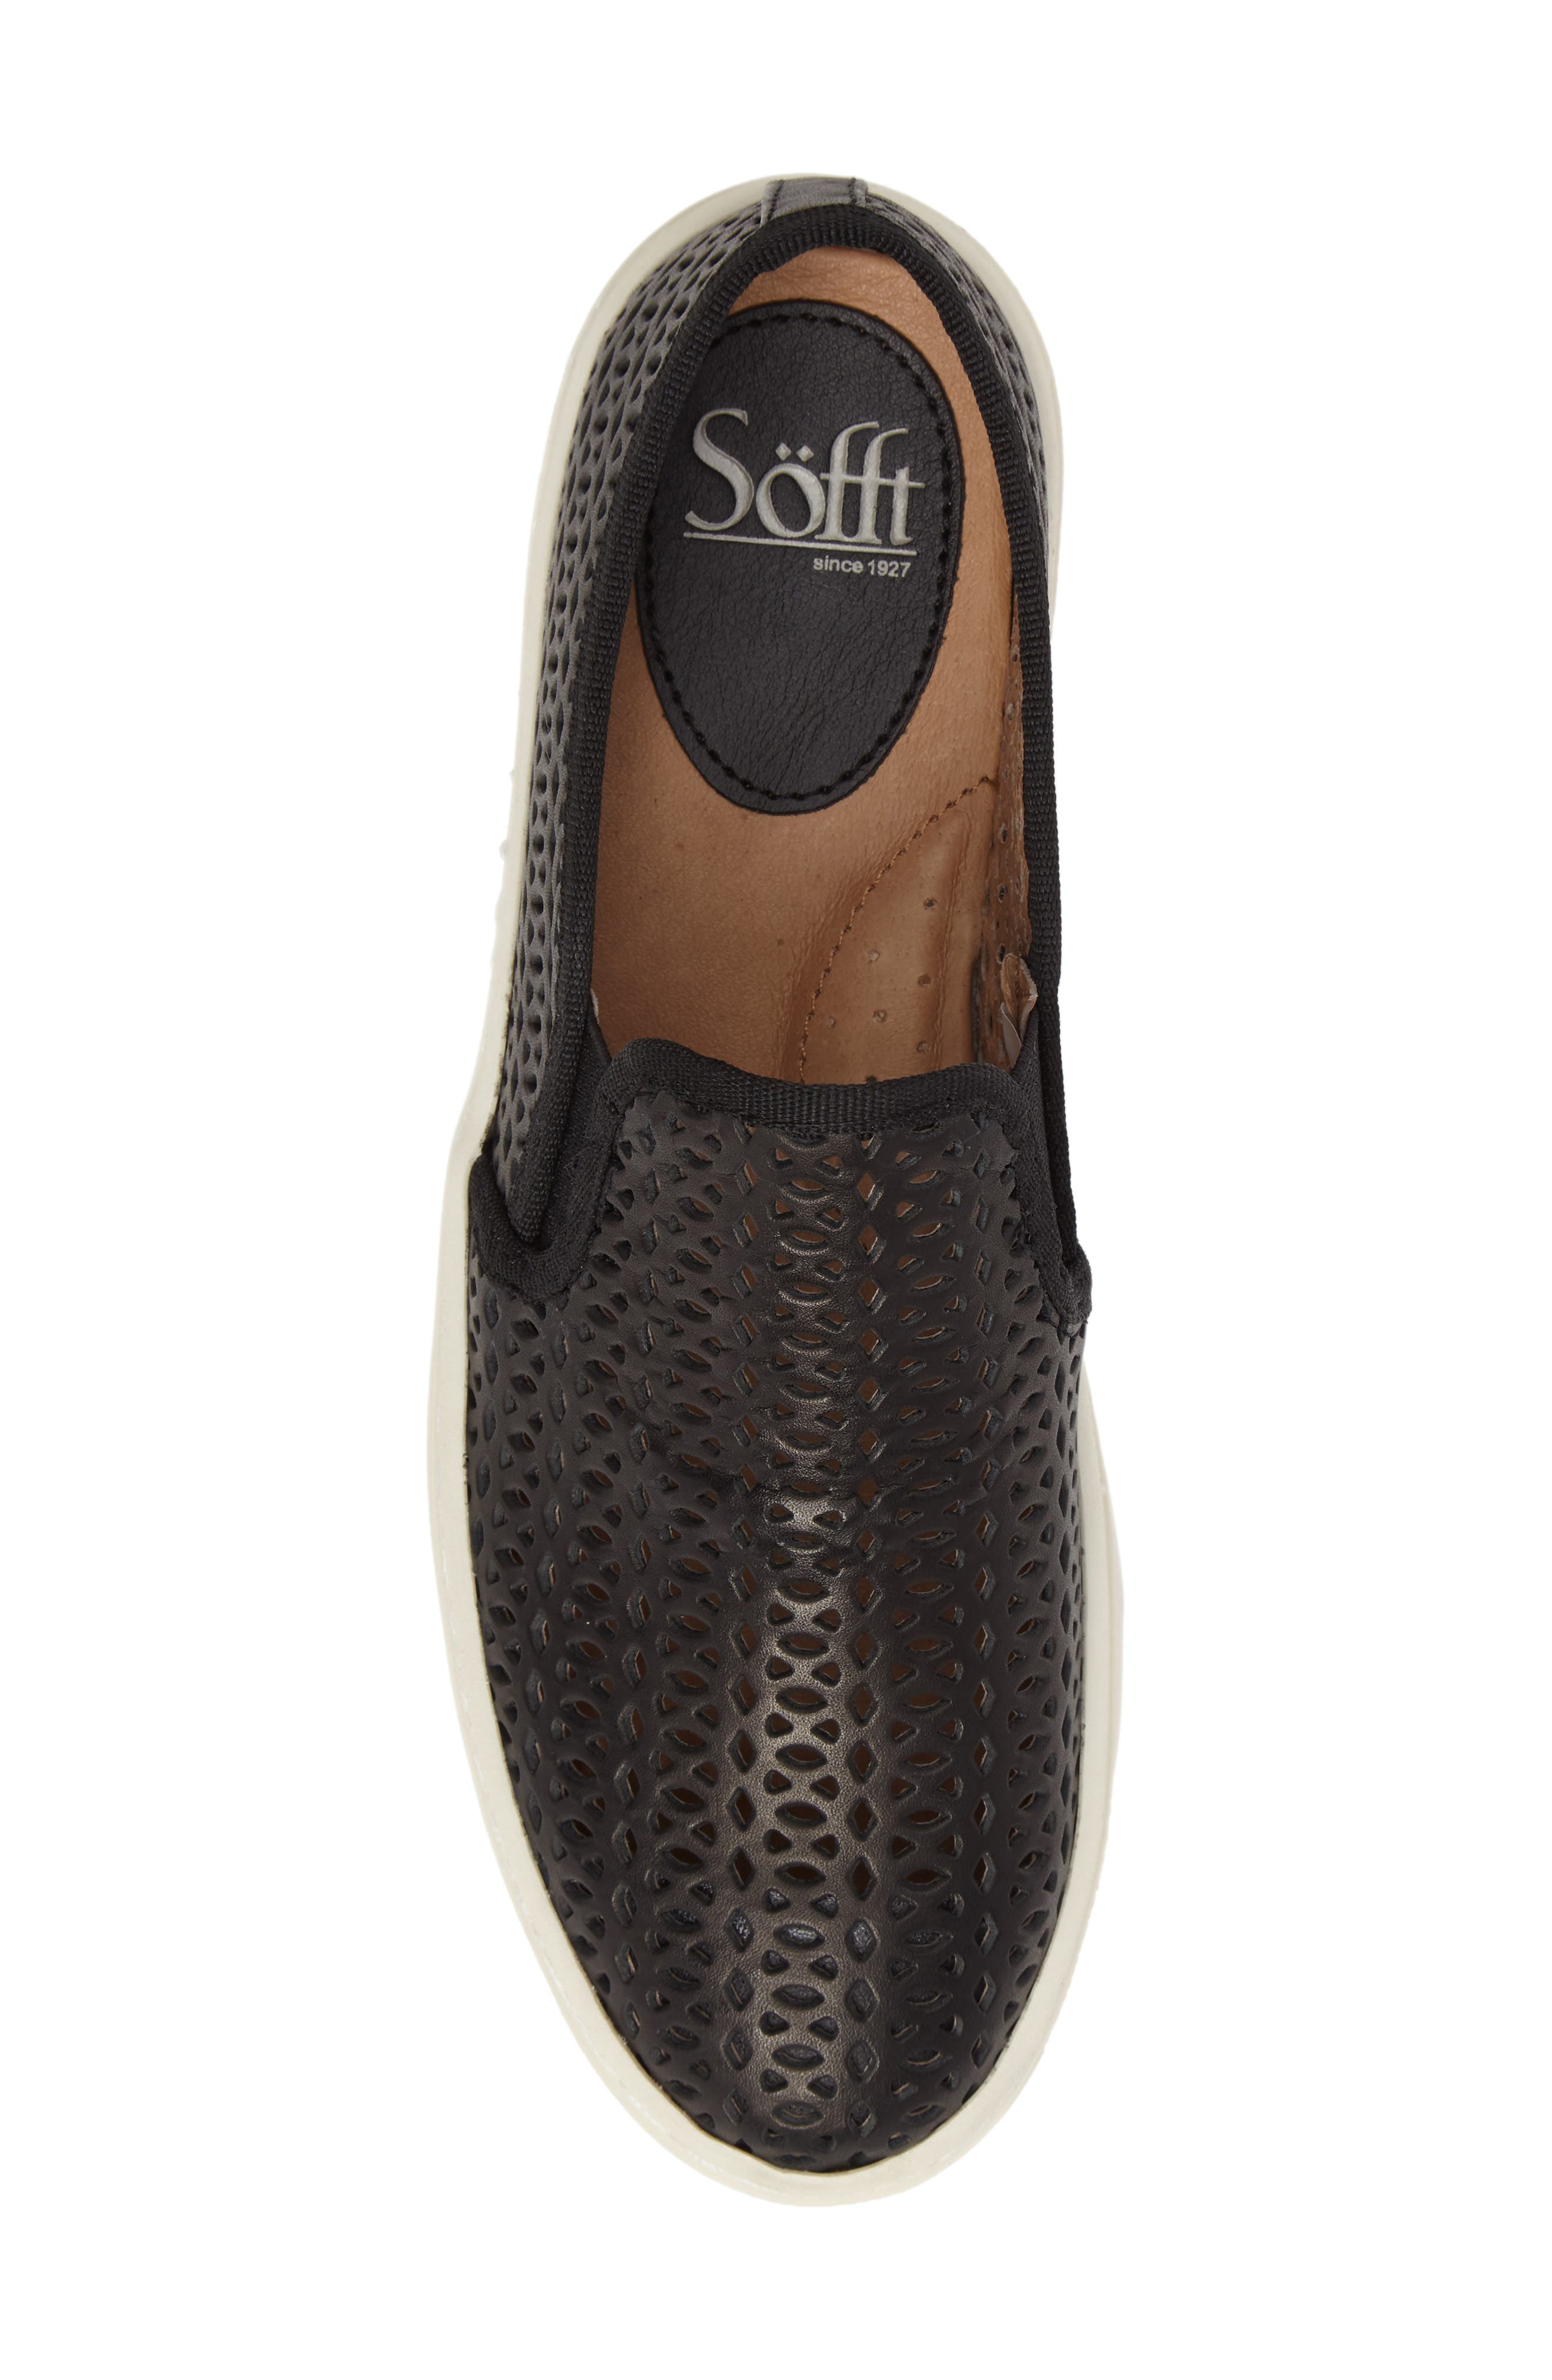 Somers II Slip-on Sneaker,                             Alternate thumbnail 5, color,                             Black Perforated Leather